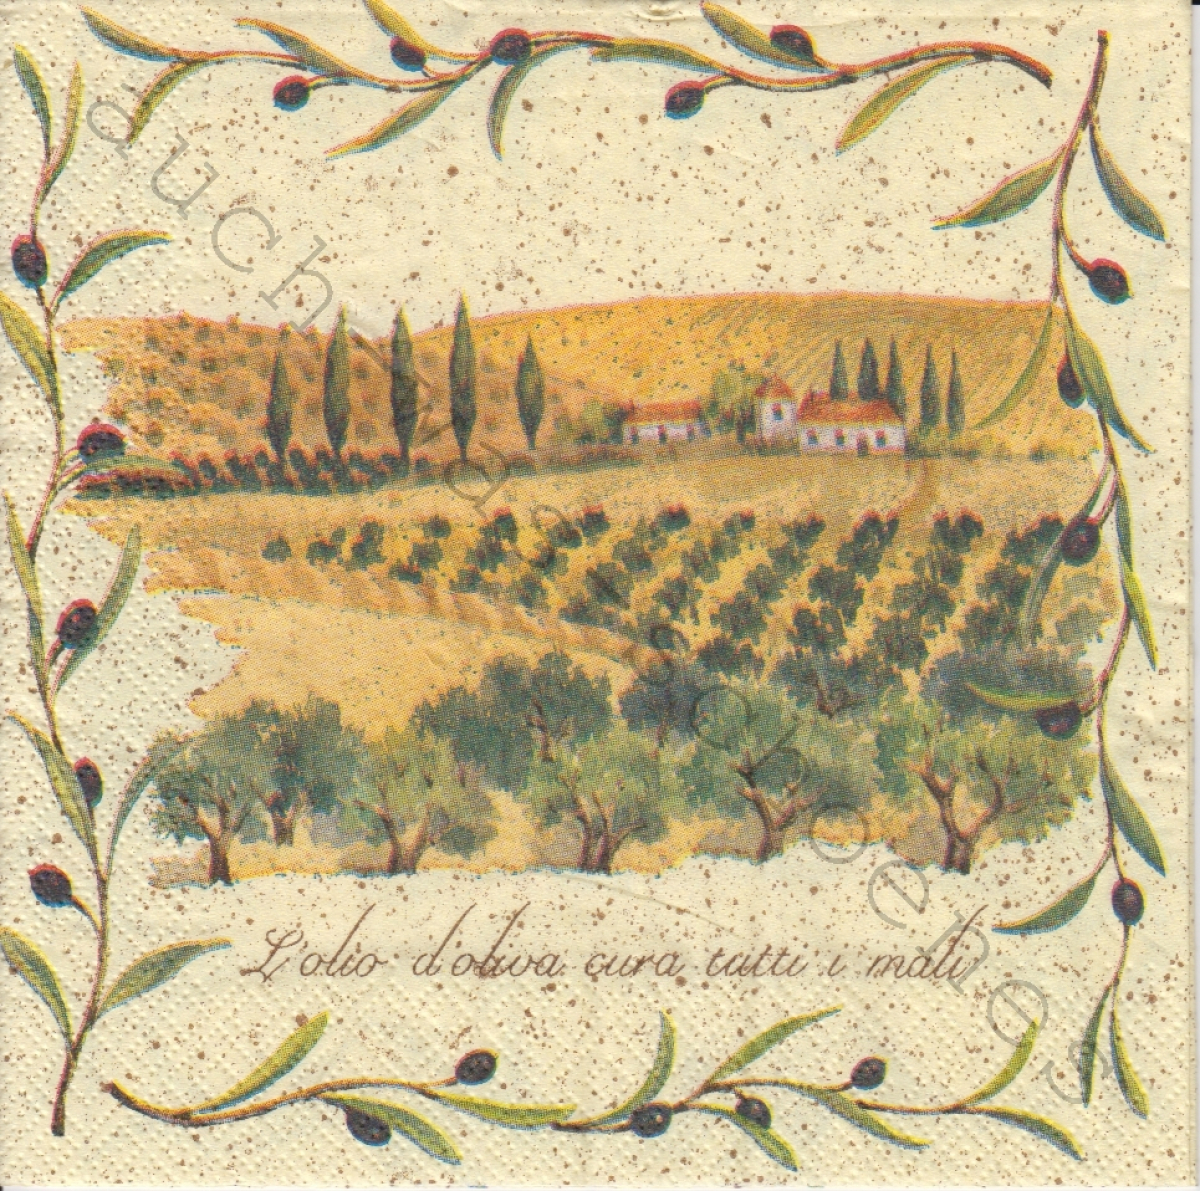 Serviette - In der Toscana - Landschaft - la125